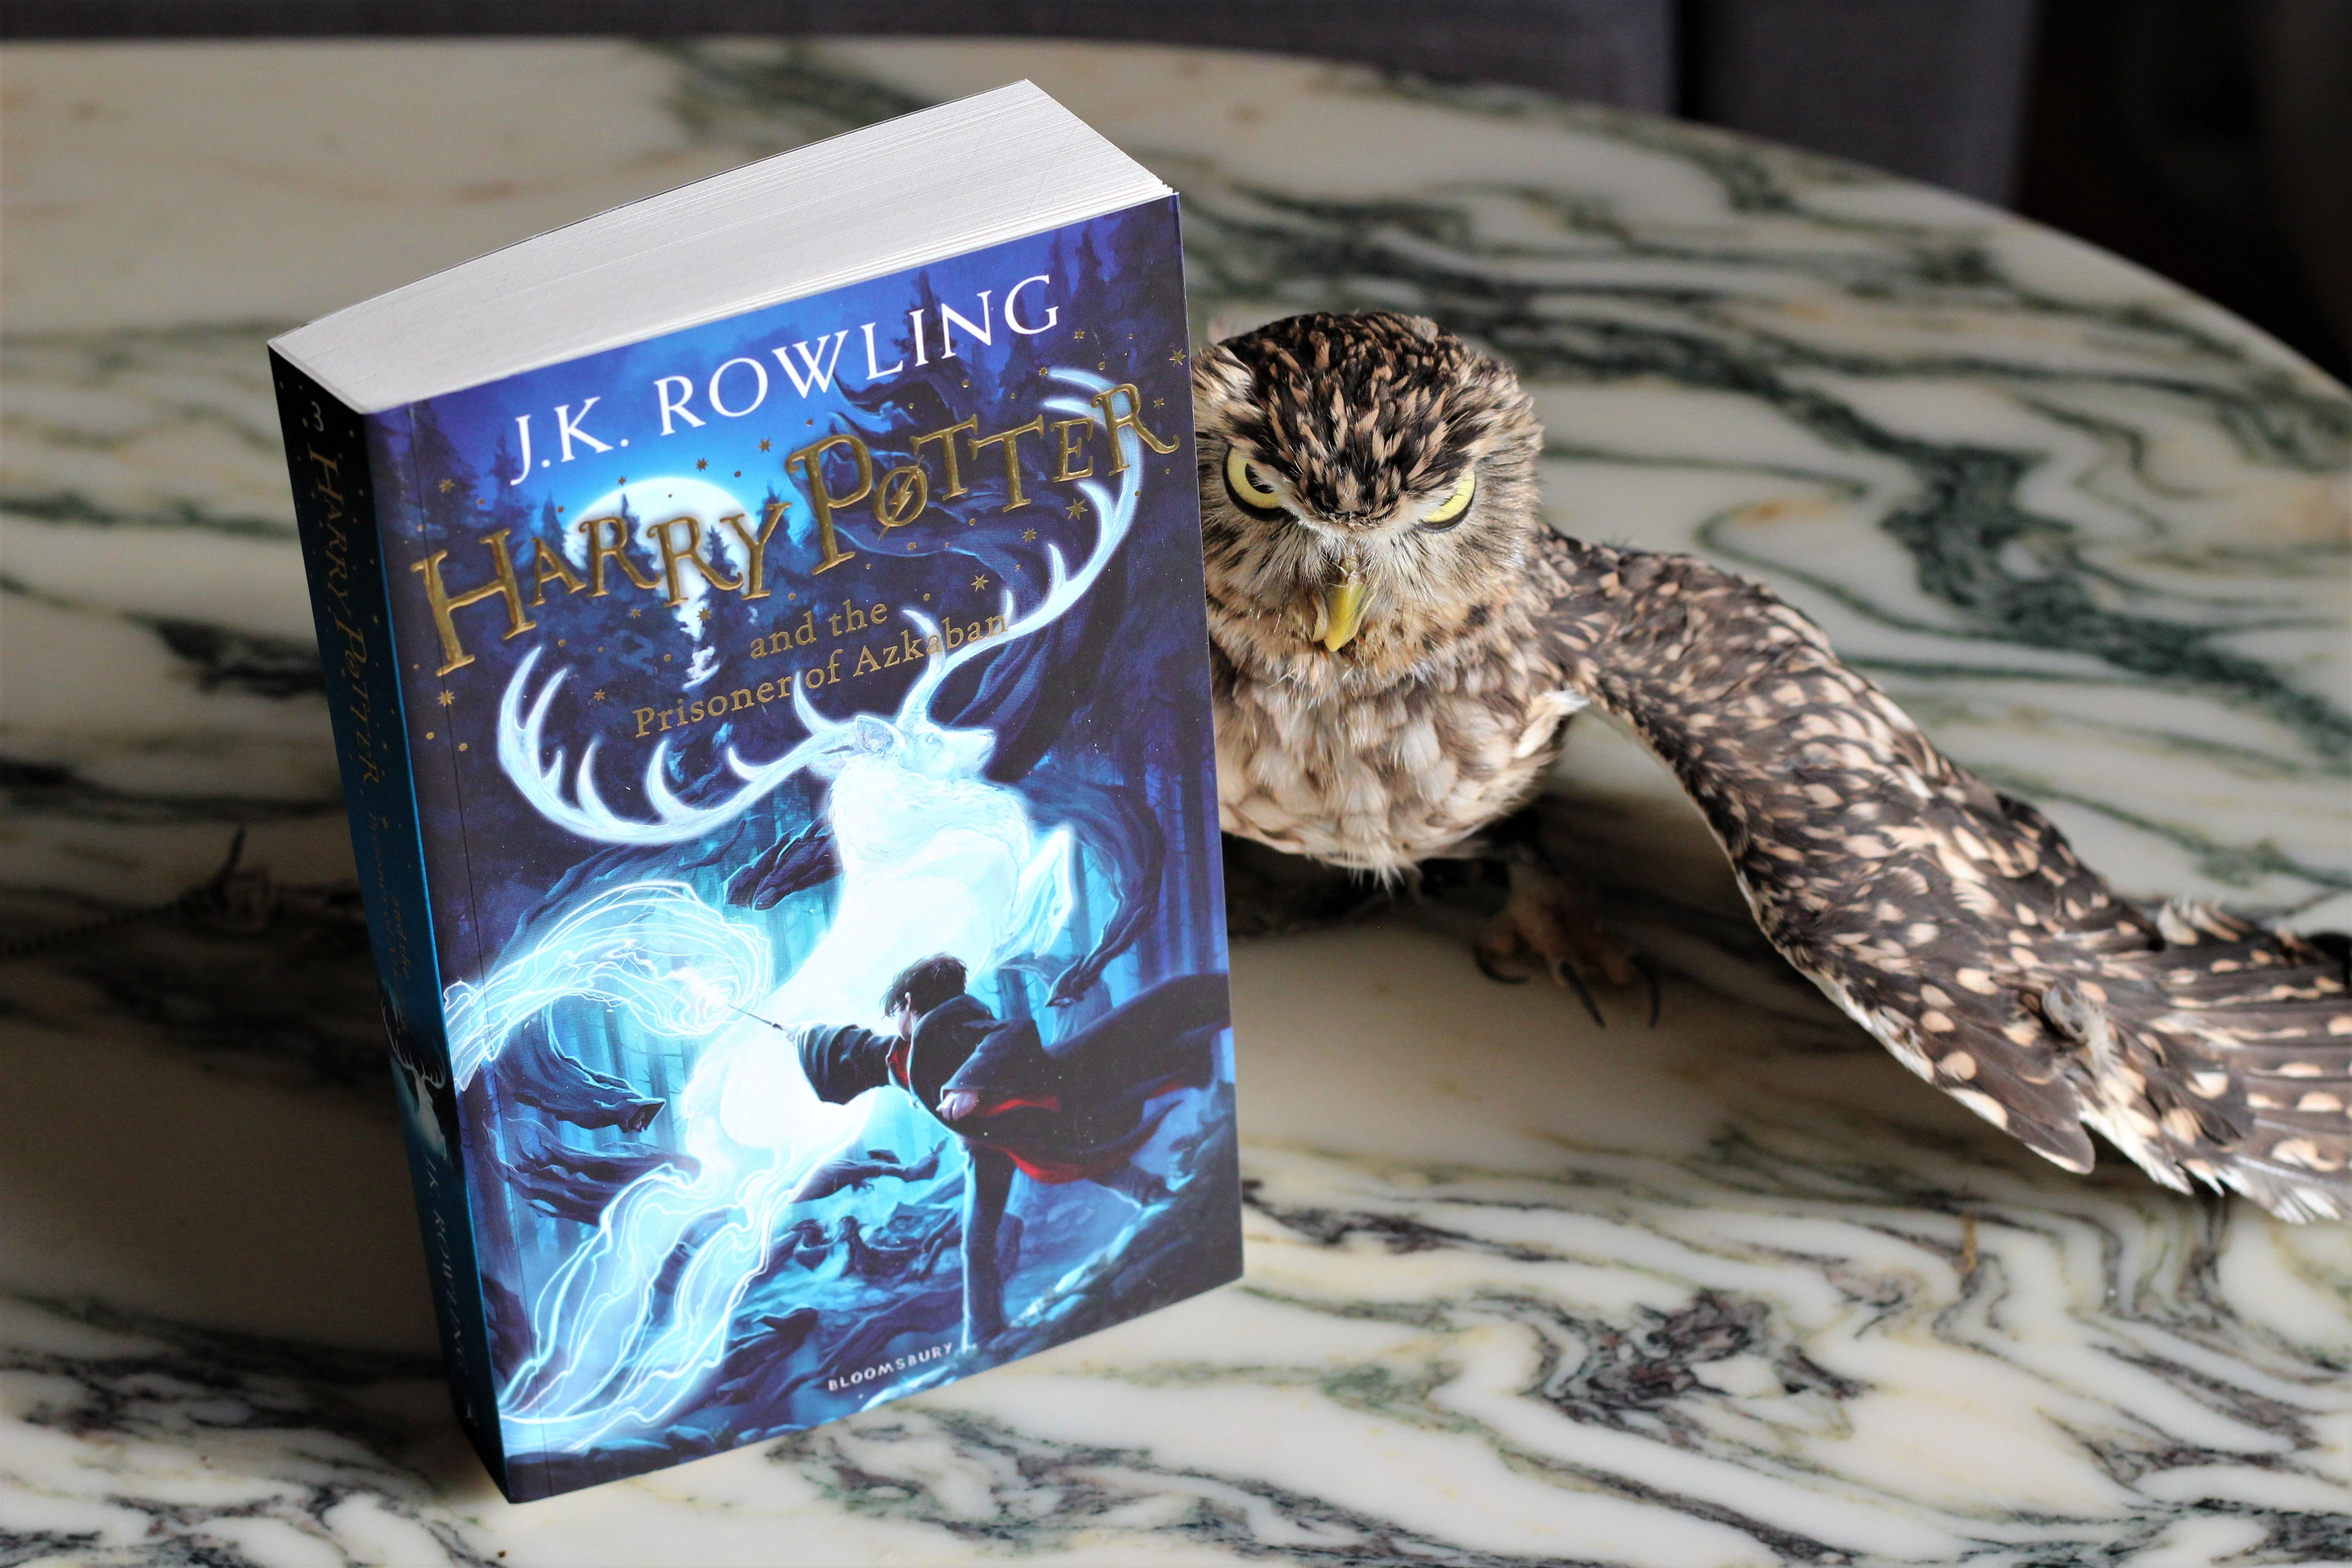 Harry Potter and the Prisoner of Azkaban owl